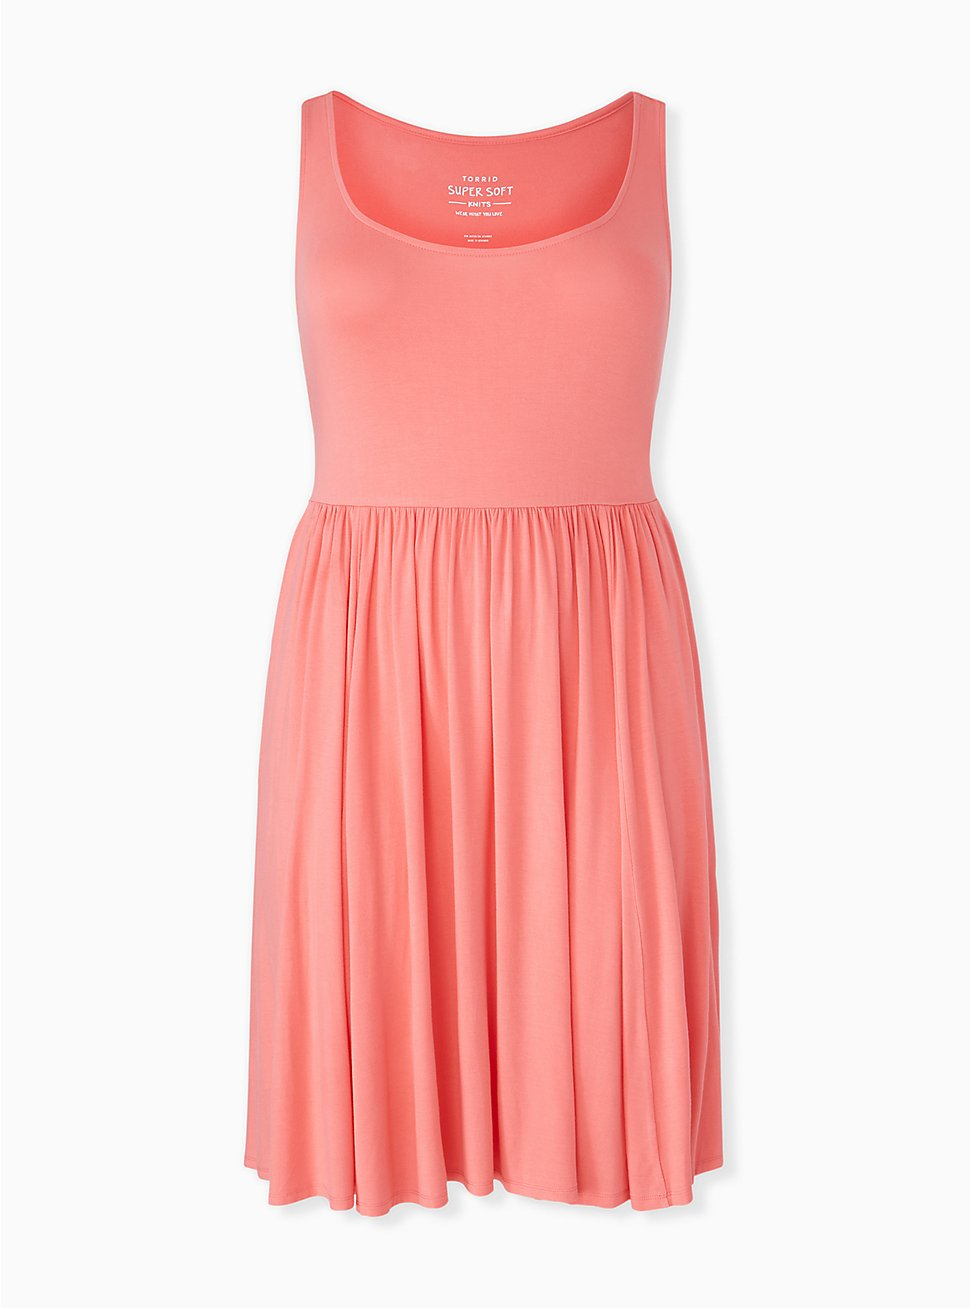 Super Soft Coral Skater Dress, WILD ORANGE, hi-res